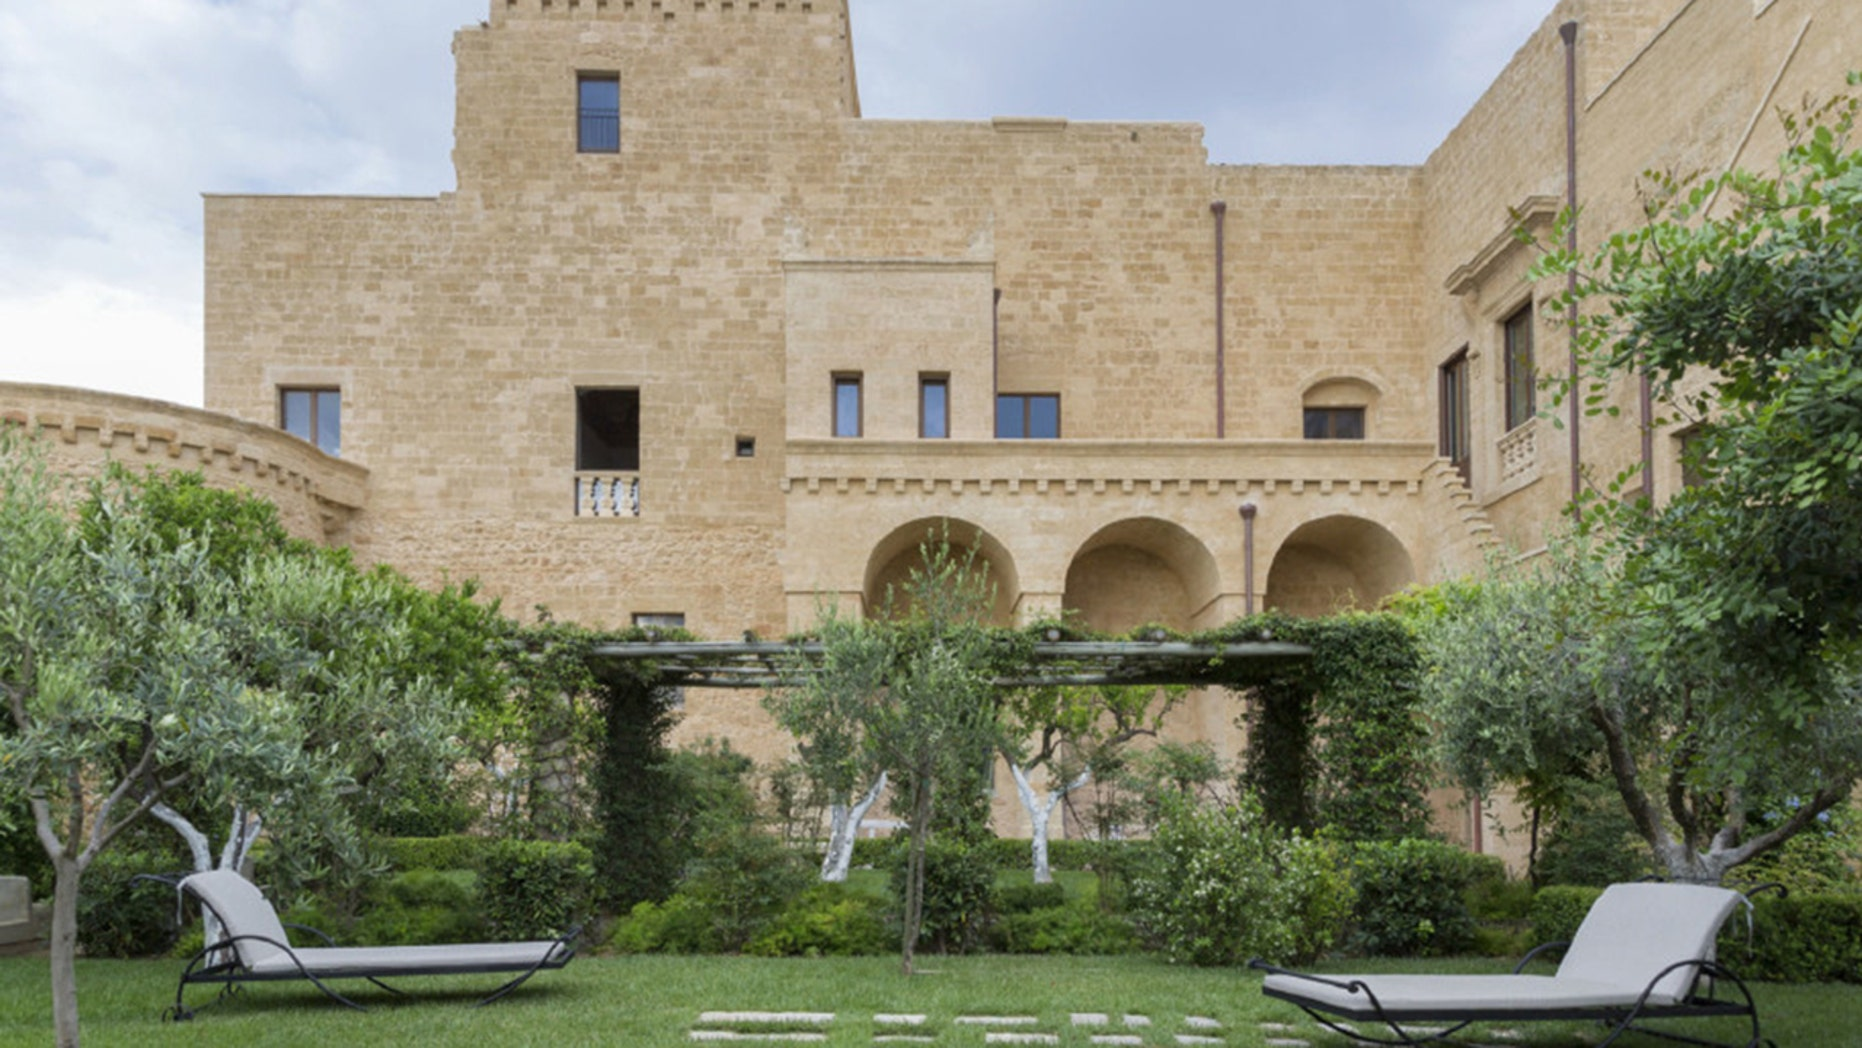 The castle hotel and its restaurant, called Castello di Ugento, formally opened in April.